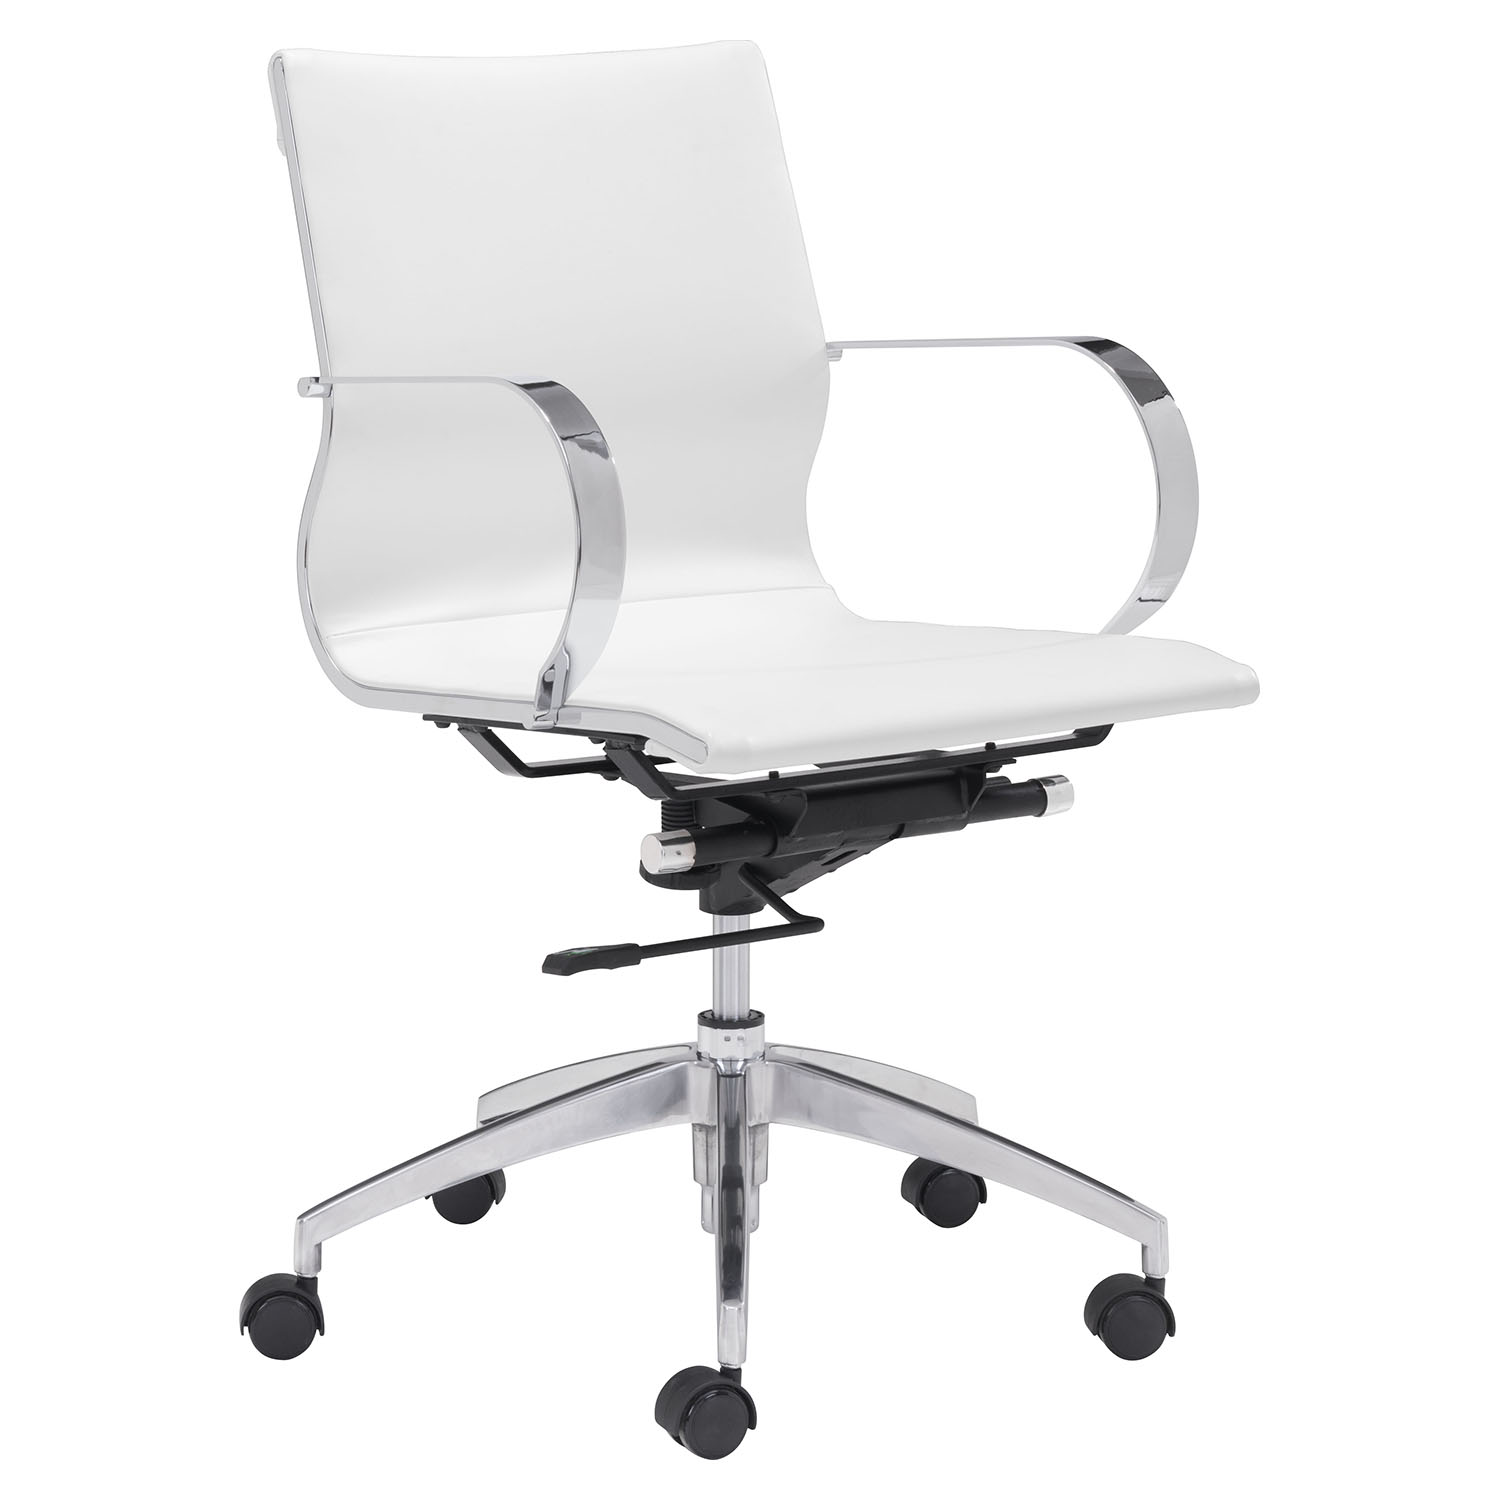 Glider Low Back Office Chair - White